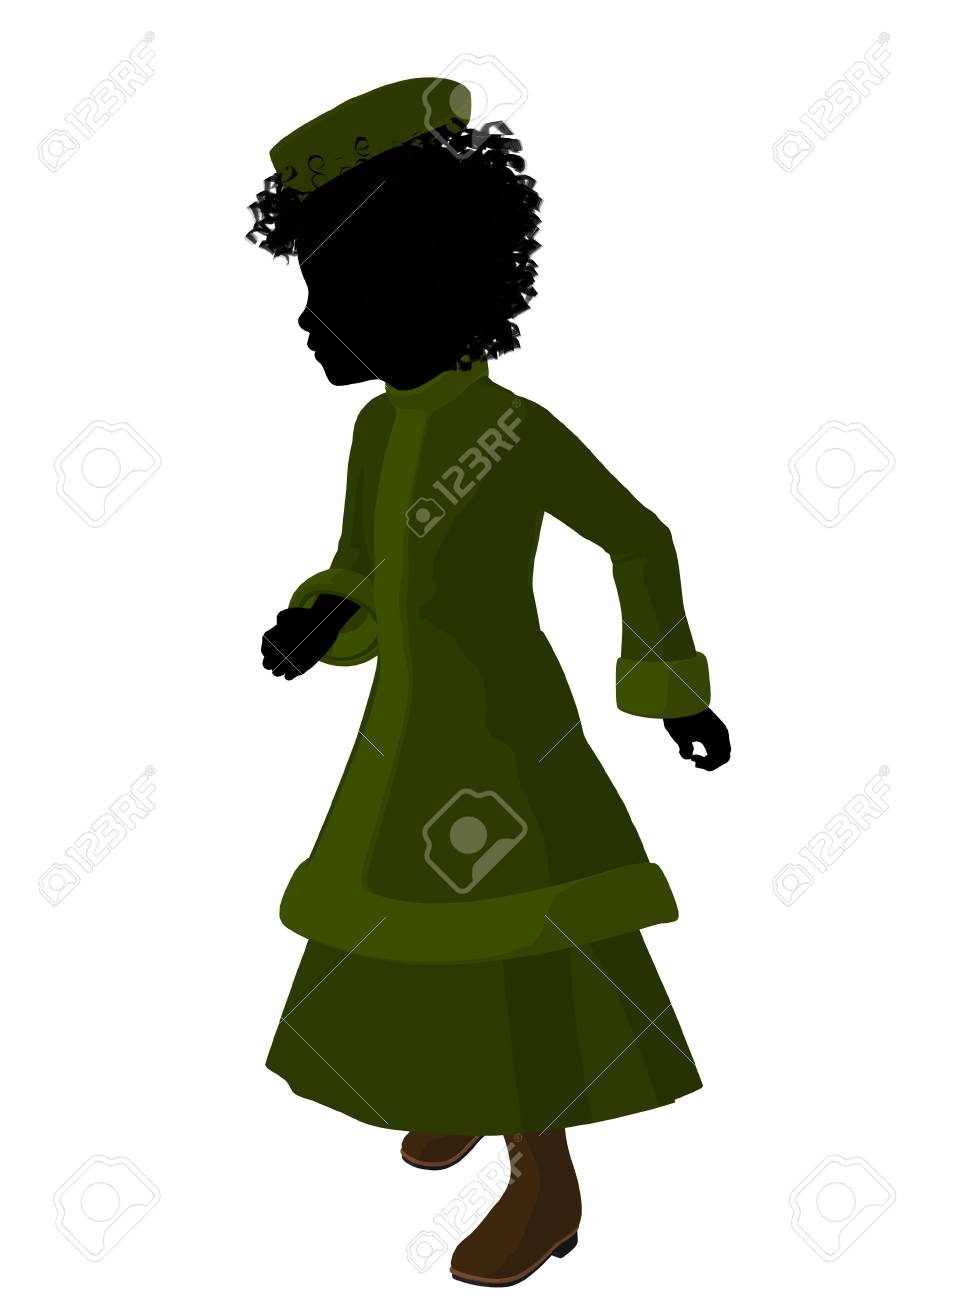 e0440d8959f African american victorian girl art illustration silhouette on a white  background Stock Illustration - 7655669